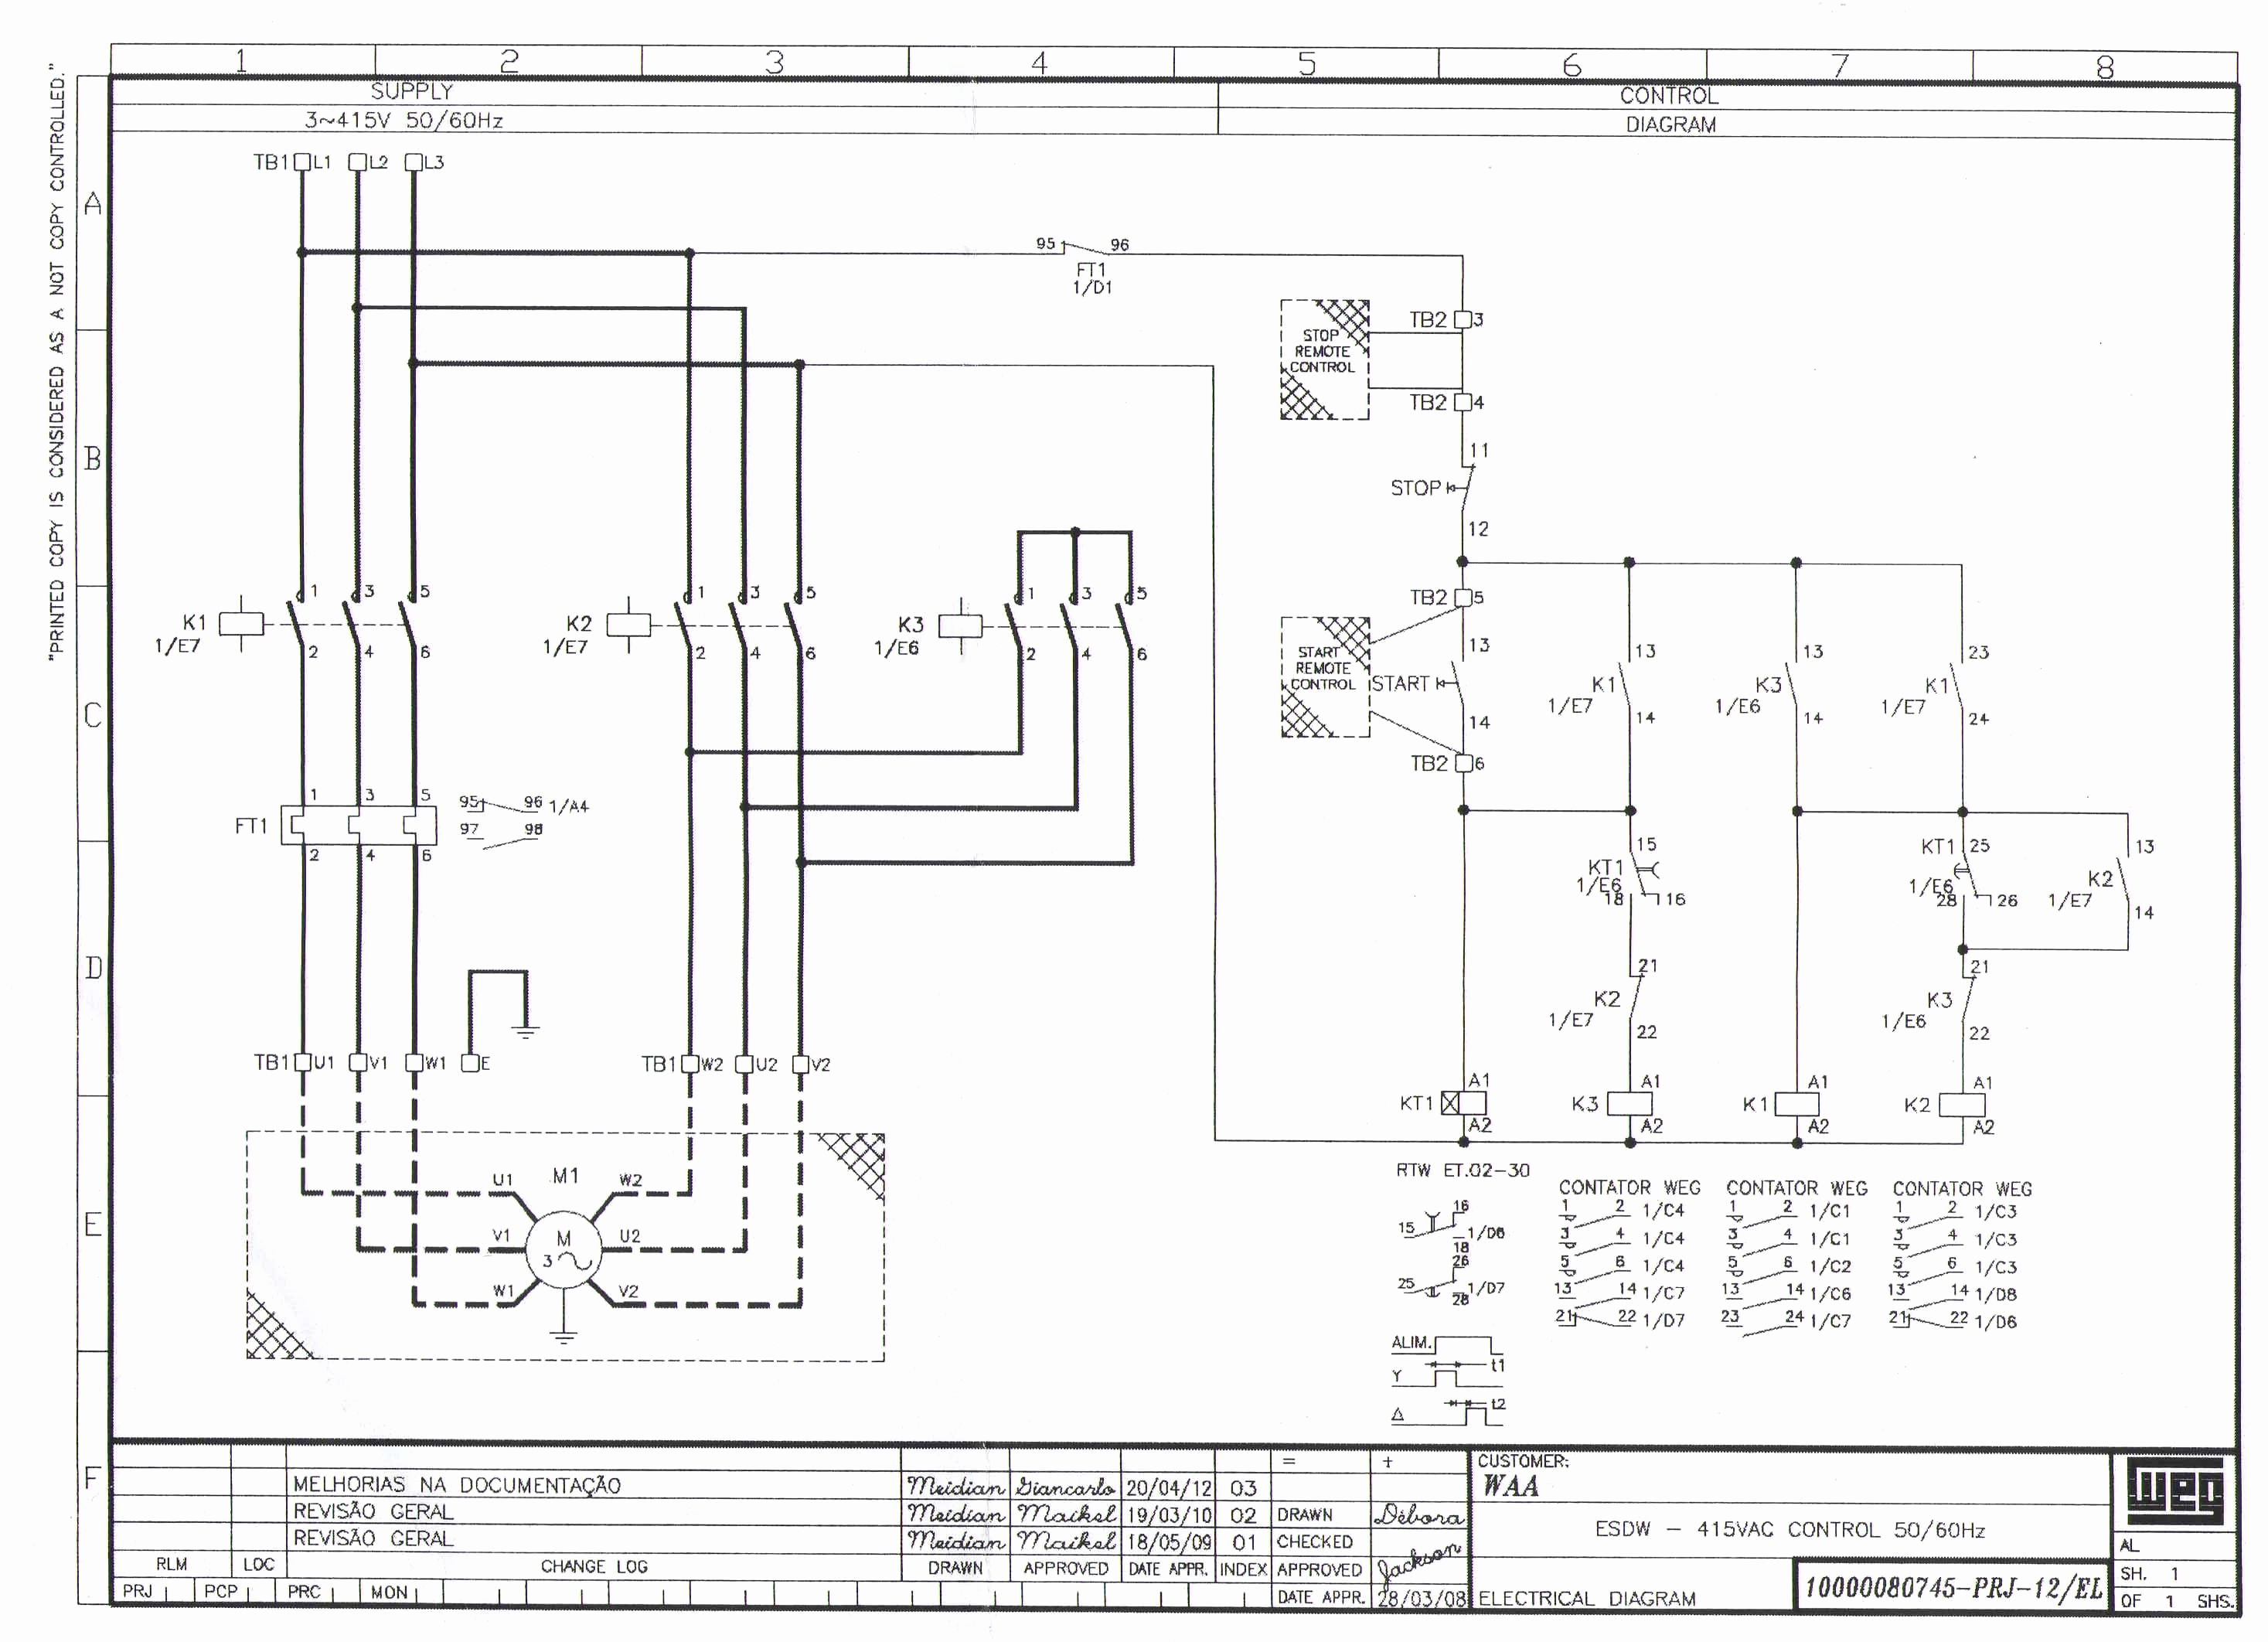 3 Phase Motor To Generator Wiring Diagram | Wiring Library - 3 Phase Motor Wiring Diagram